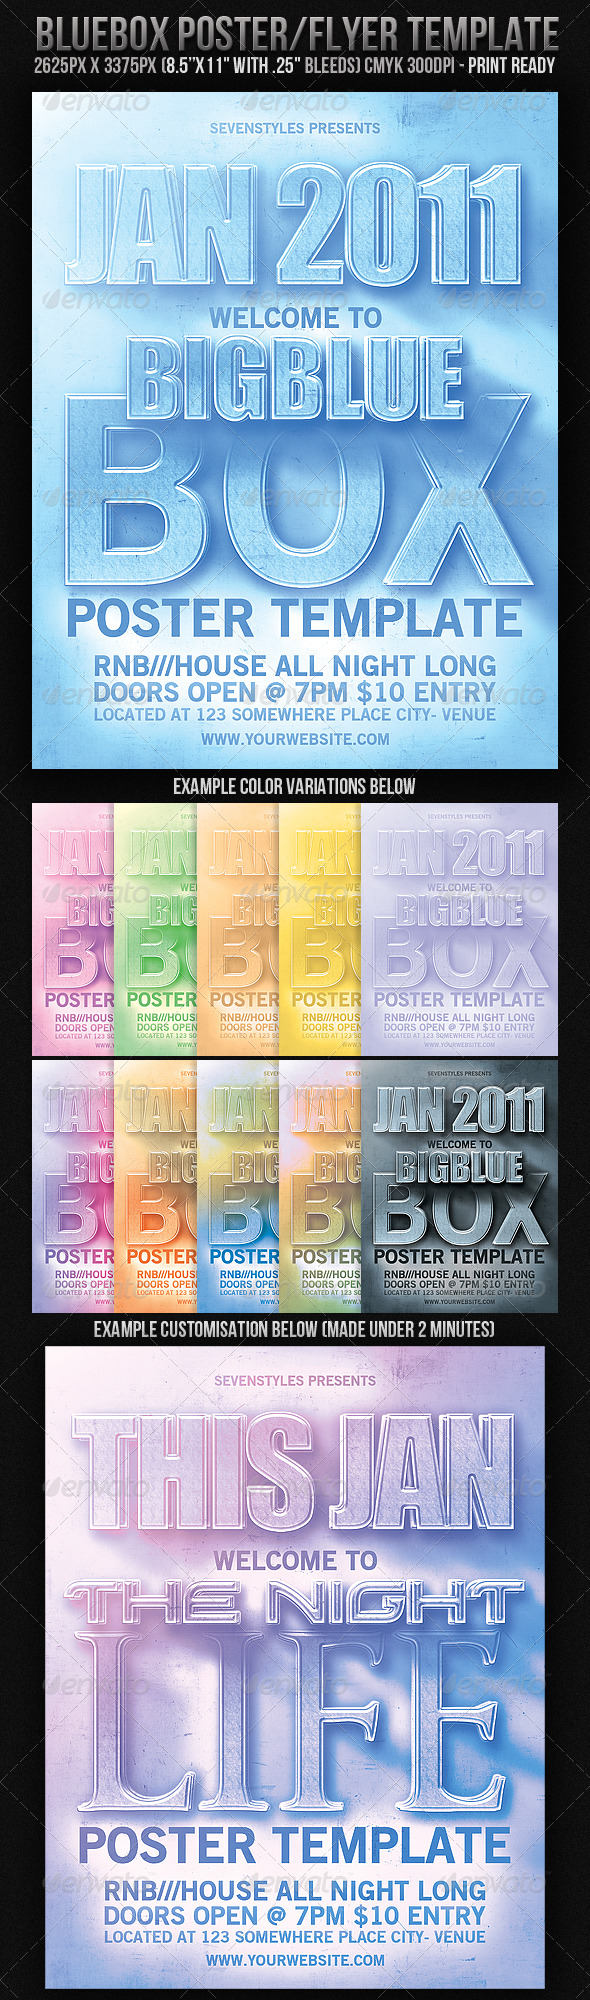 GraphicRiver BlueBox Poster Flyer Template 153965